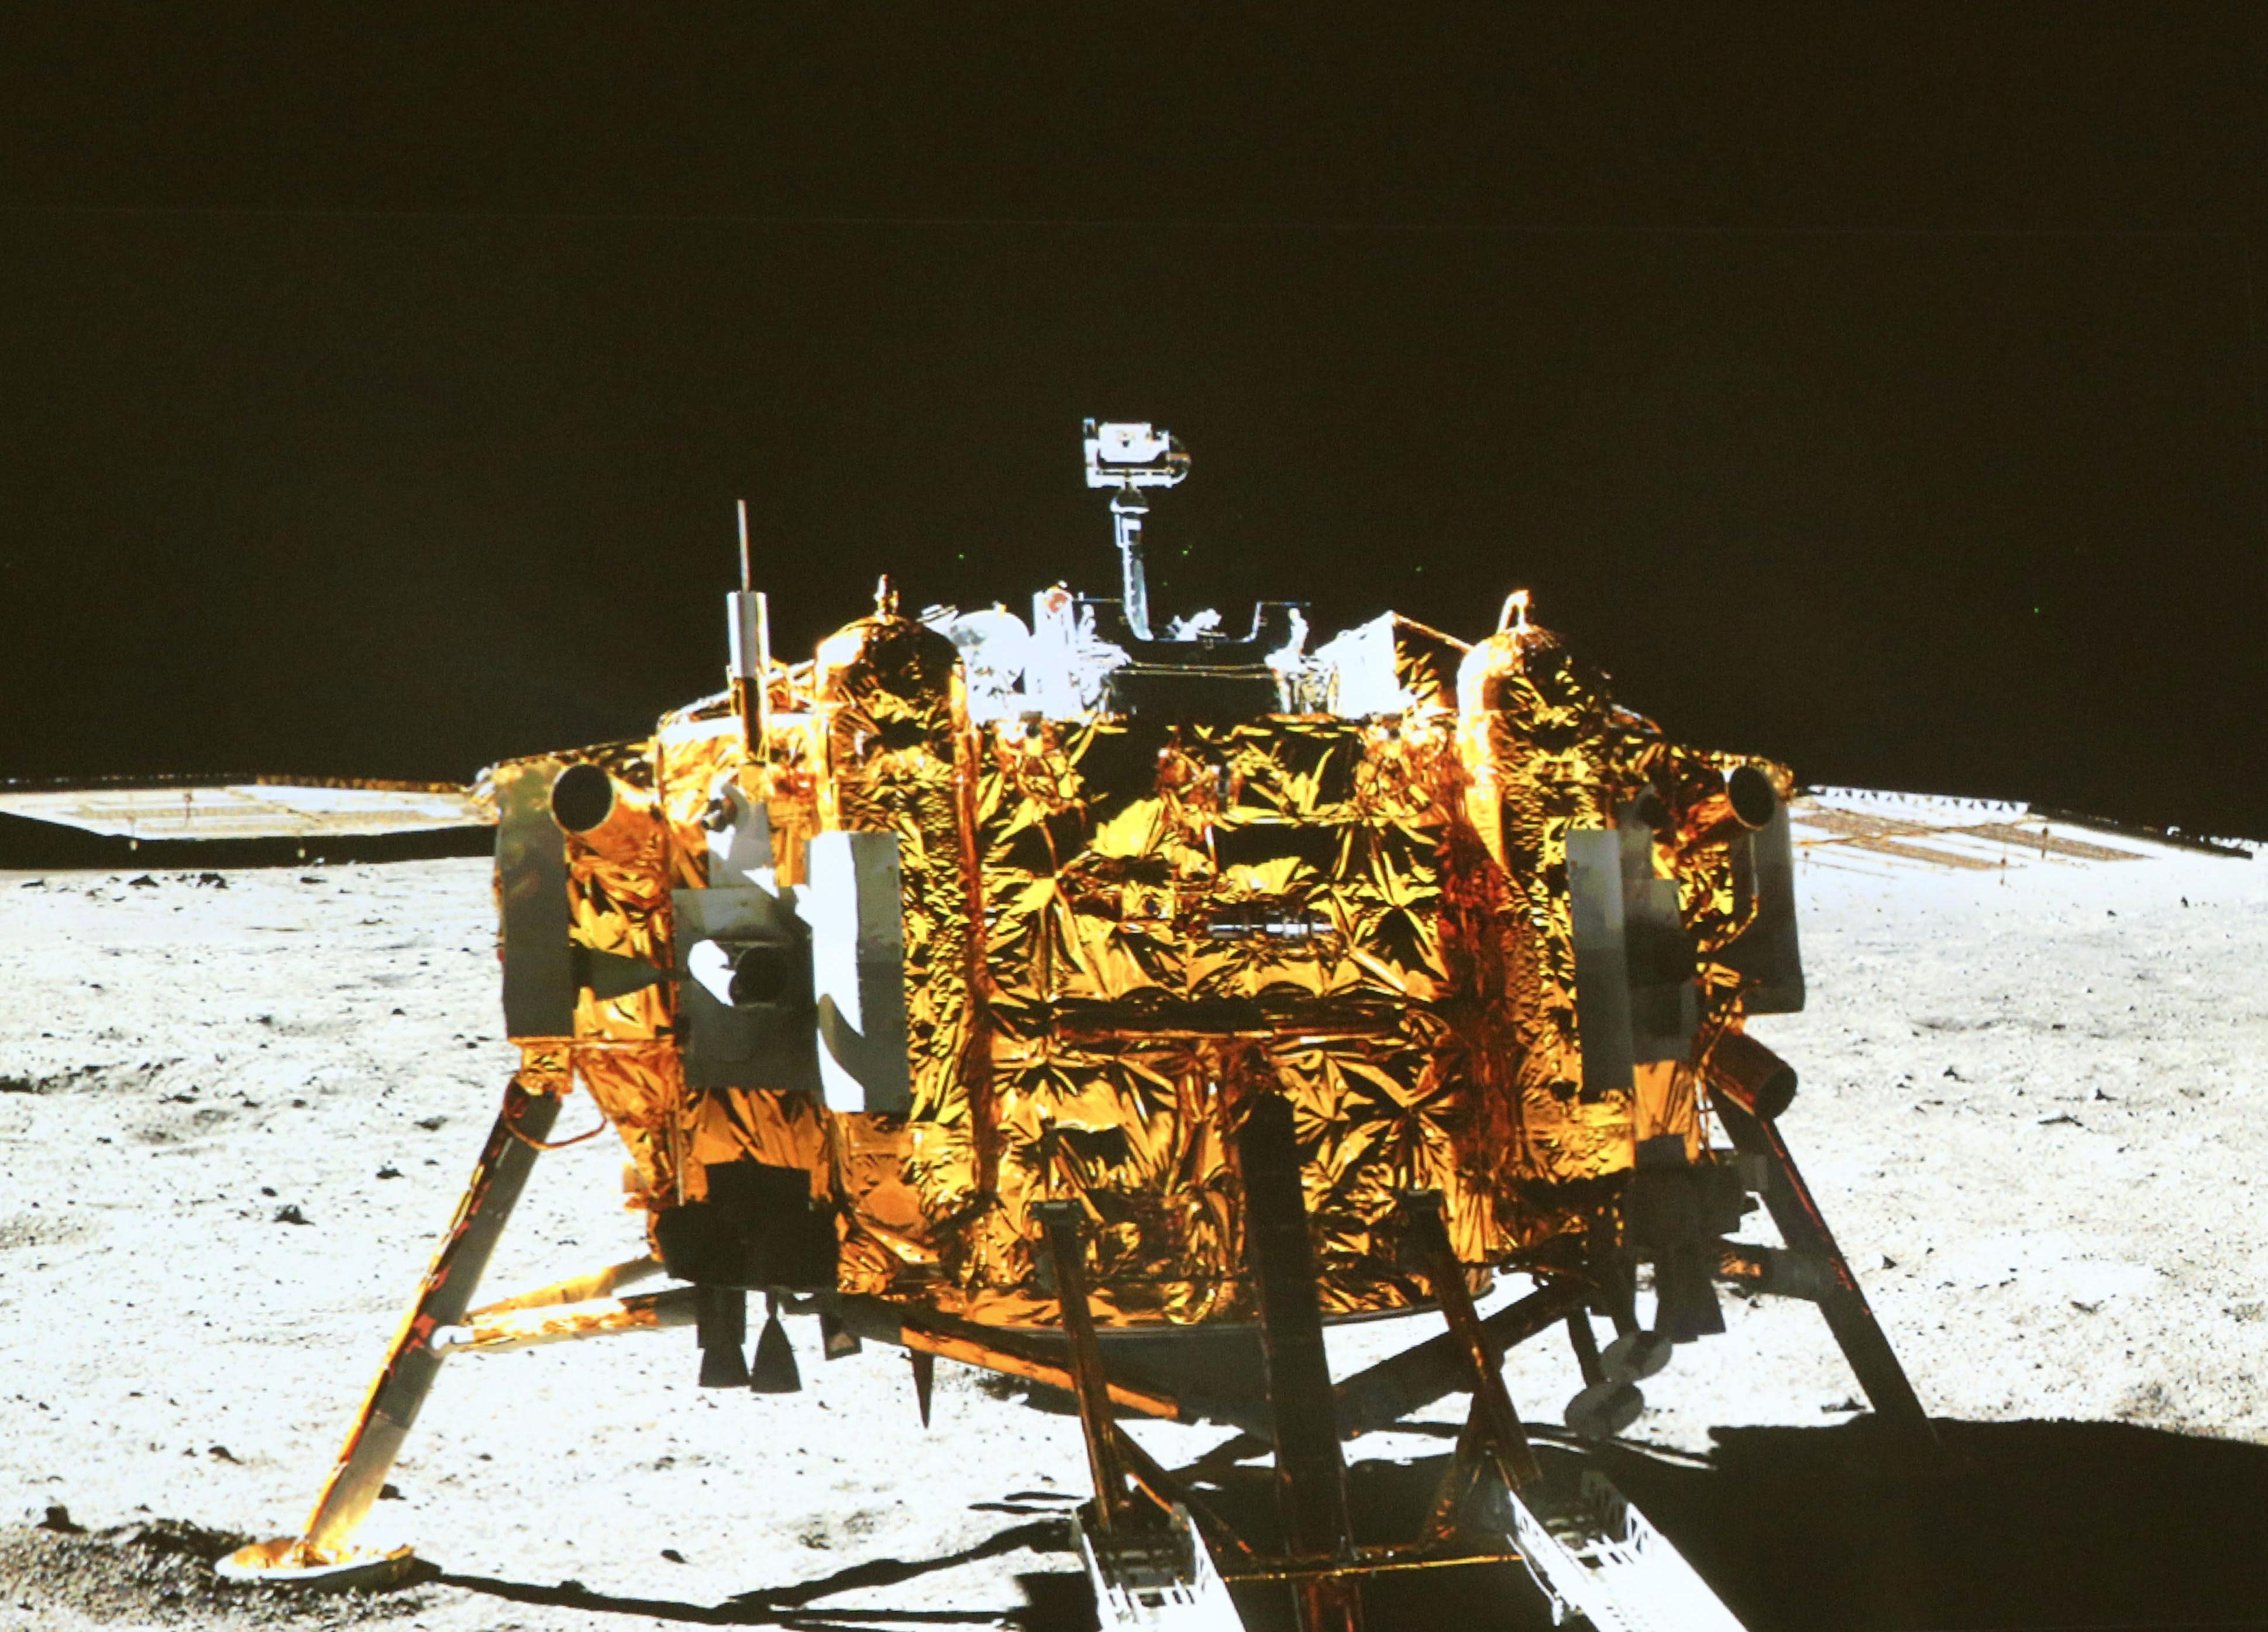 chinese moon rover - HD1440×1036